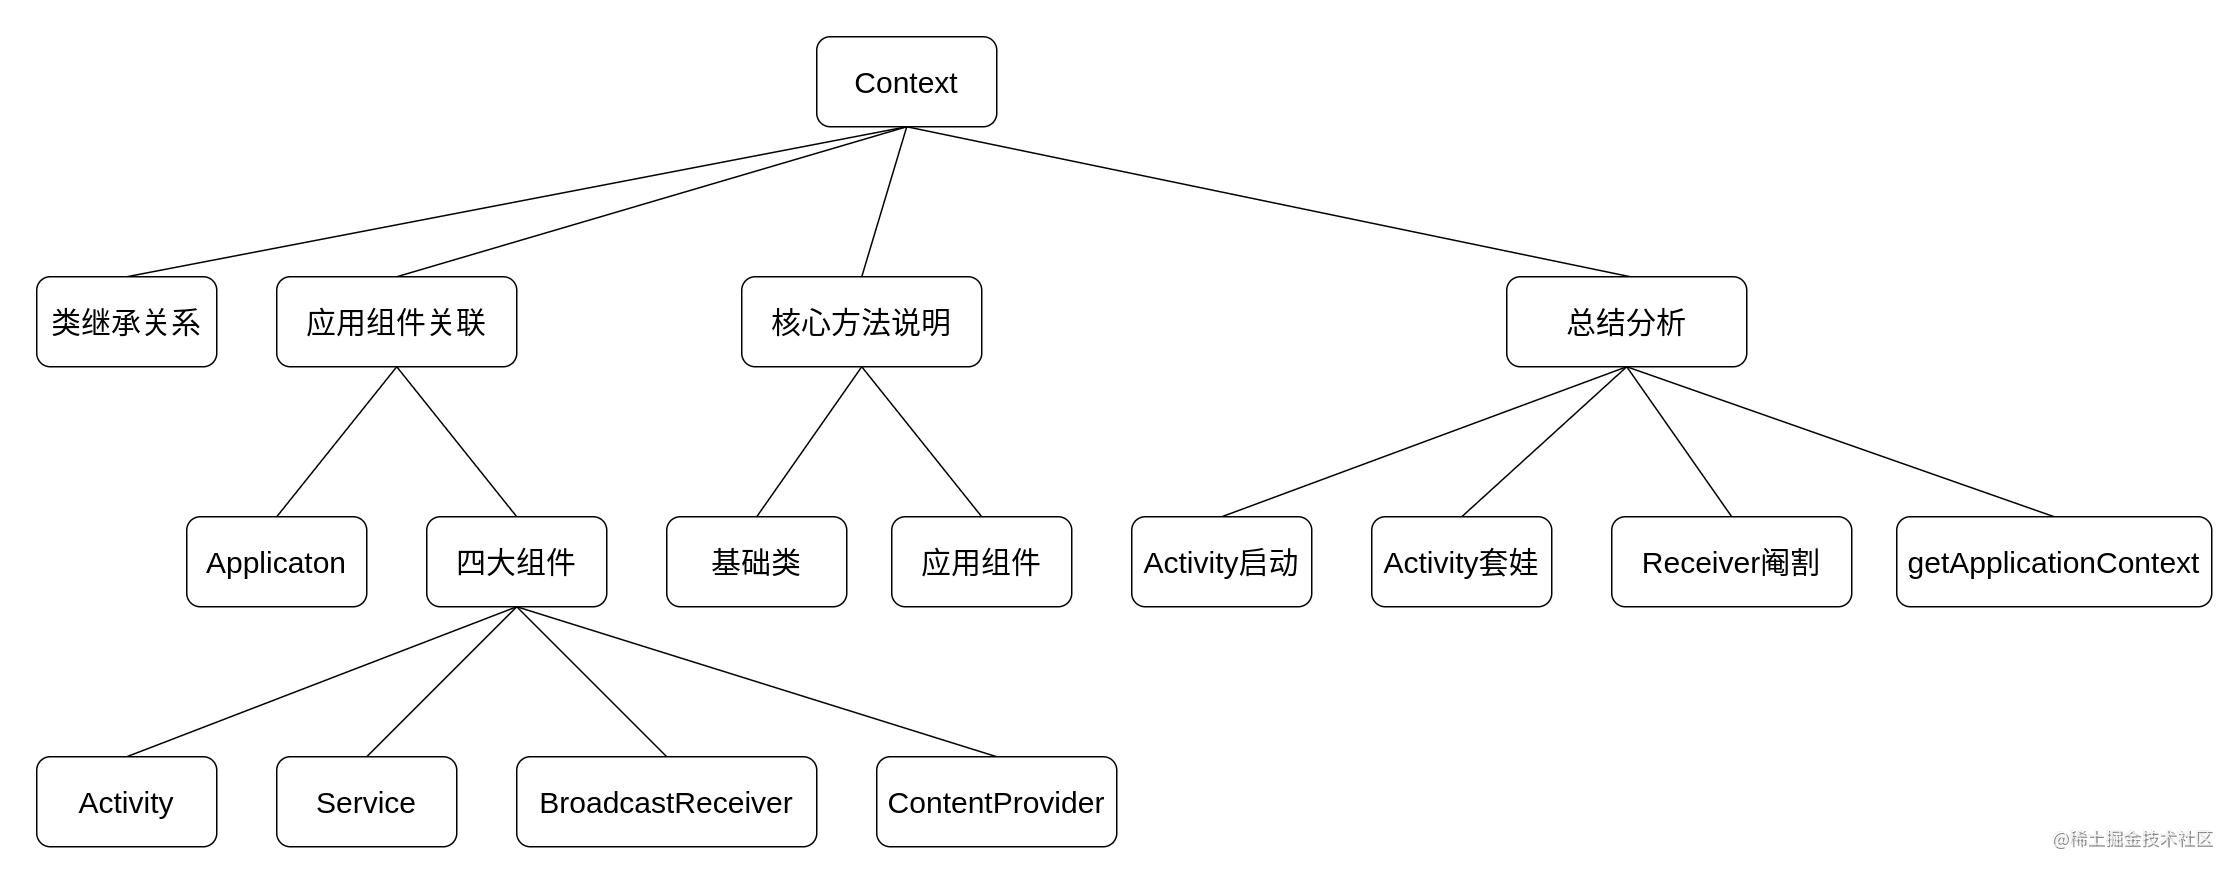 Android 基础组件 Context 概览图